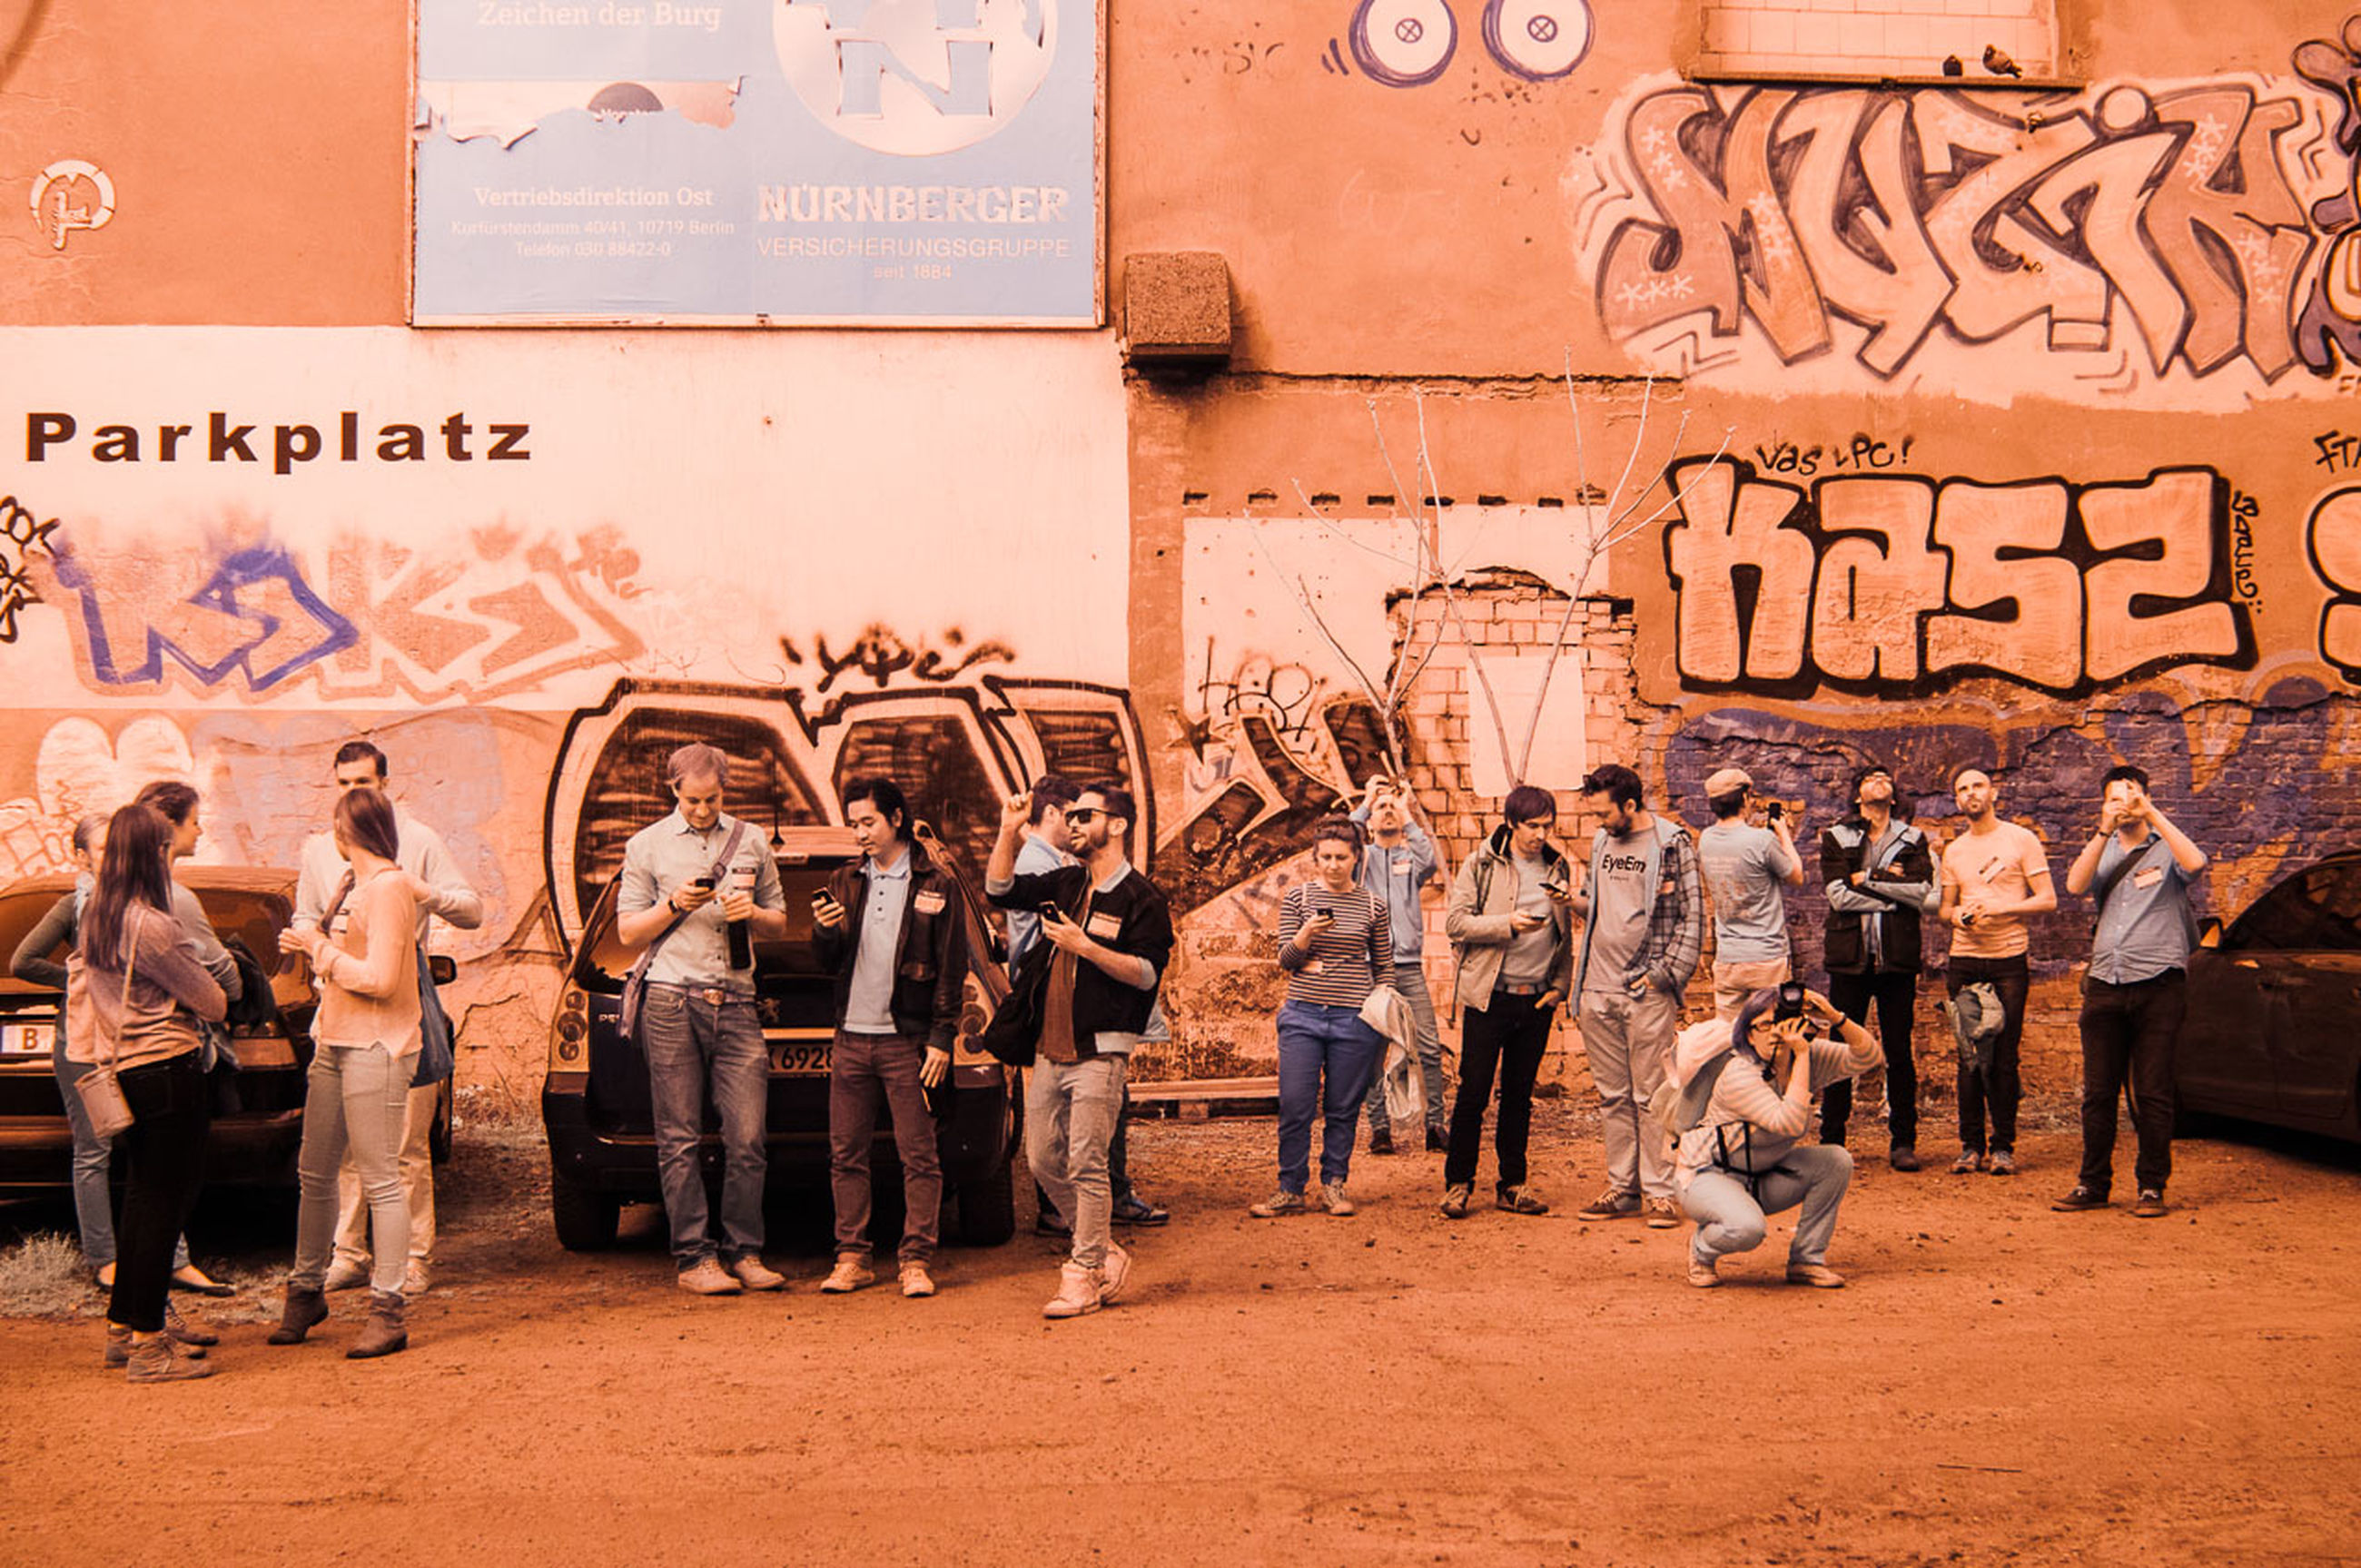 graffiti, art, art and craft, text, creativity, men, architecture, built structure, wall - building feature, building exterior, street art, person, large group of people, western script, human representation, animal themes, horse, communication, livestock